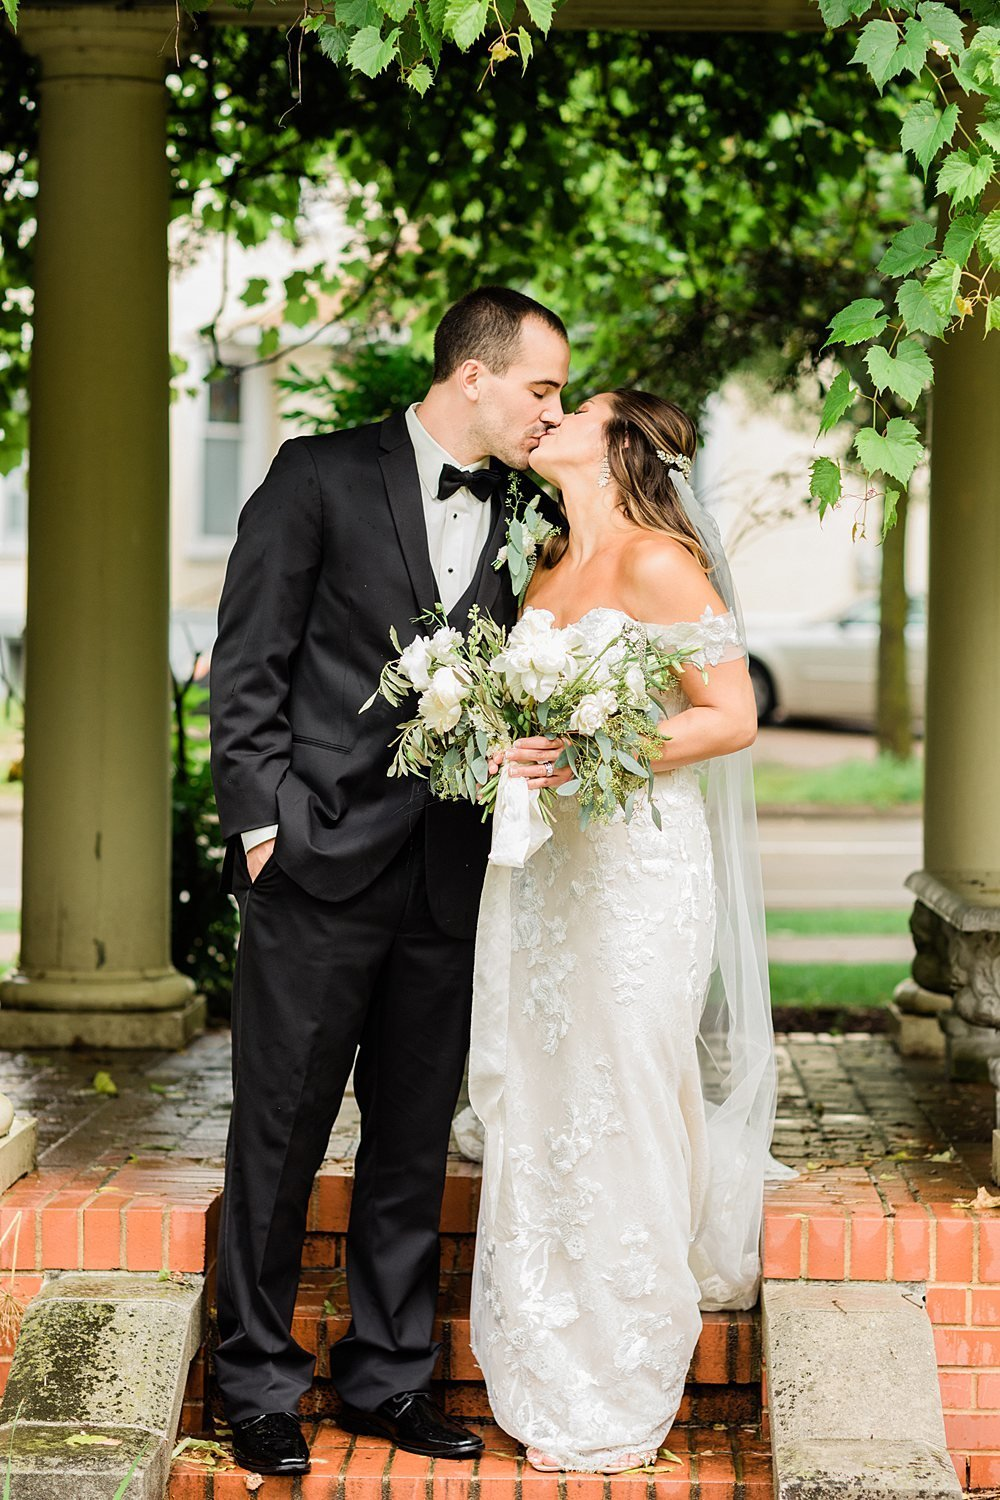 50_Downtown-Wausau-Wedding-Photos-James-Stokes-Photography